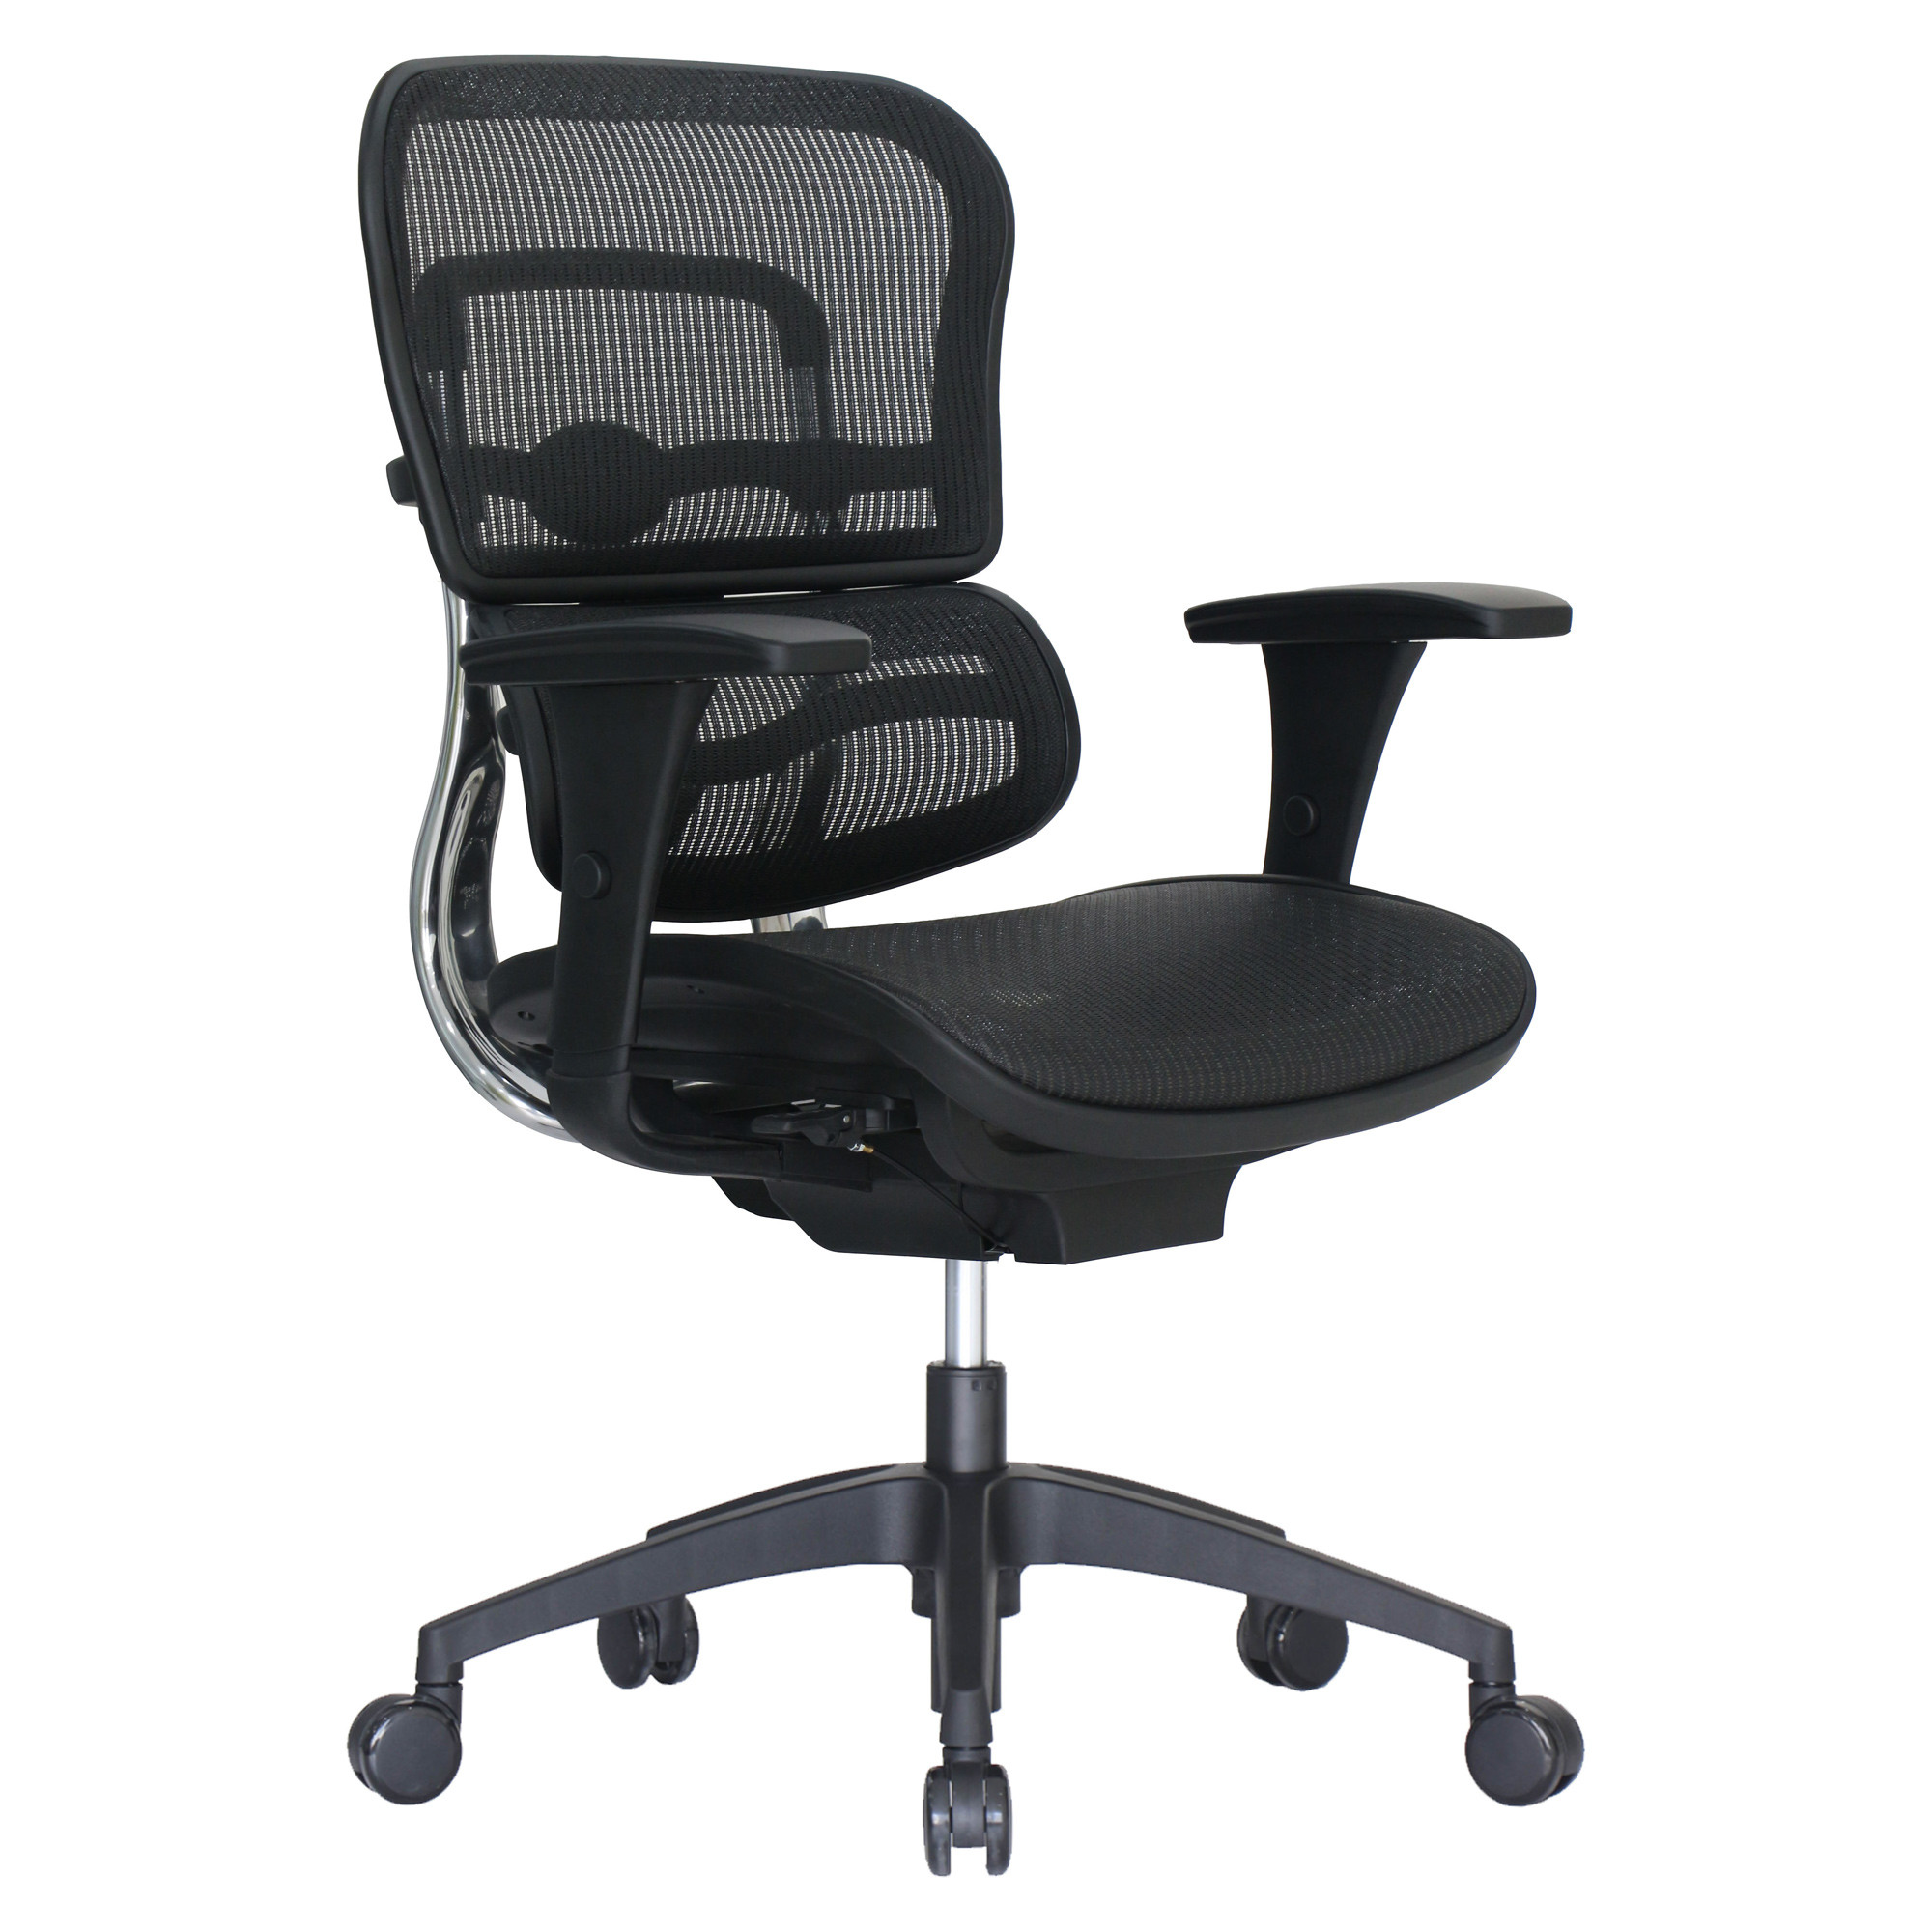 ergonomic chair australia faux leather dining covers luxury mesh office rtty1